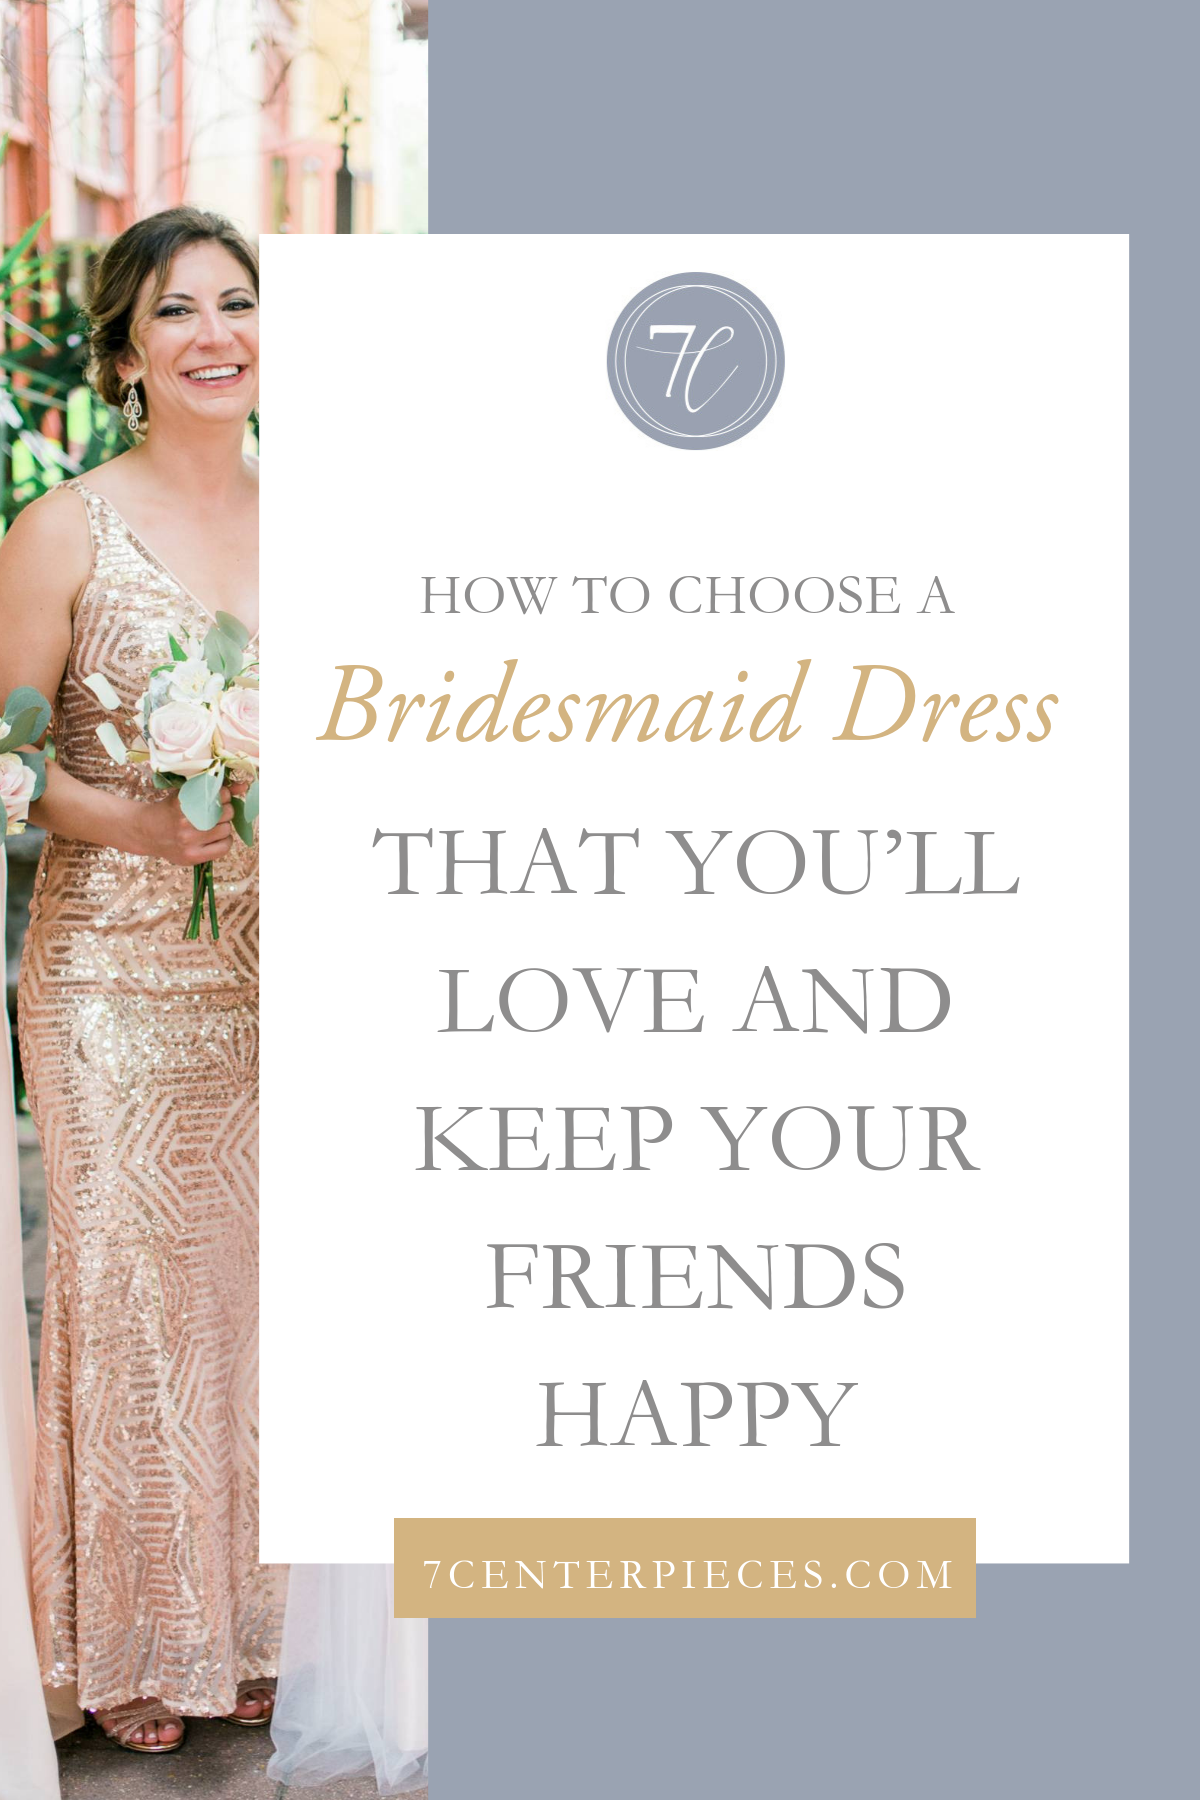 How to Choose a Bridesmaid Dress That You'll Love and Keep Your Friends Happy